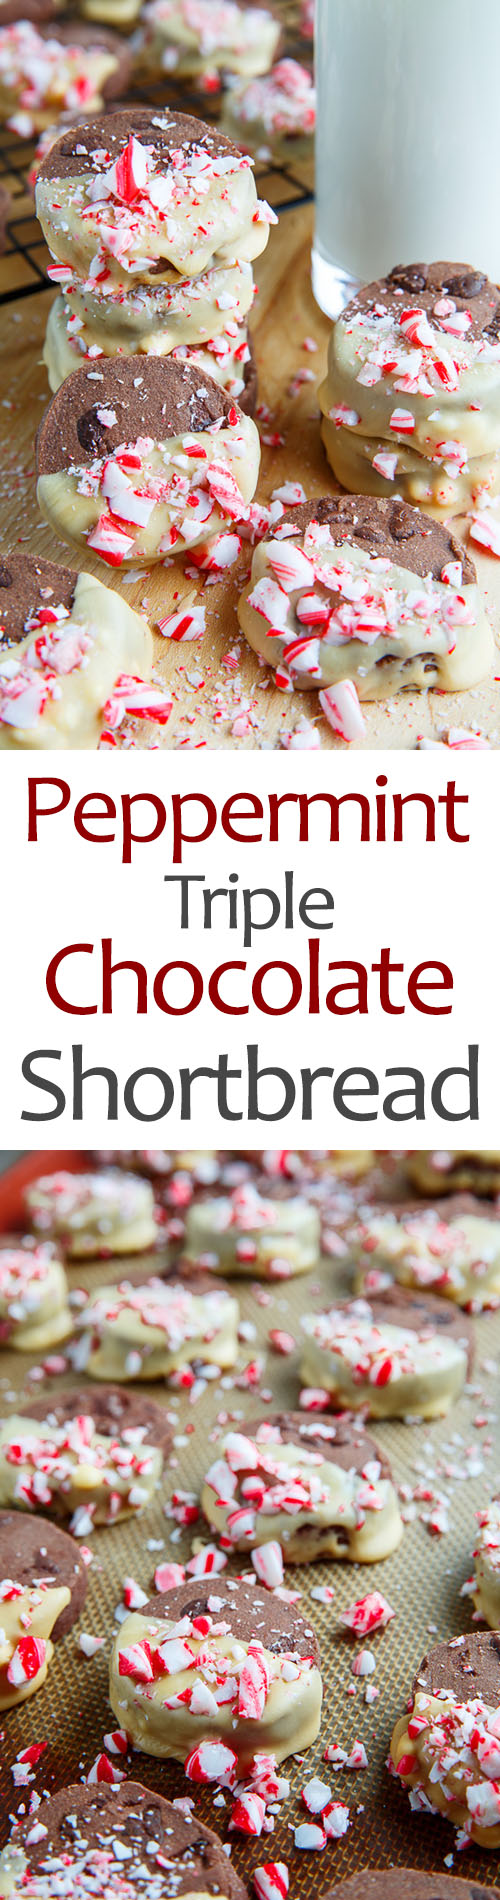 Peppermint Triple Chocolate Shortbread